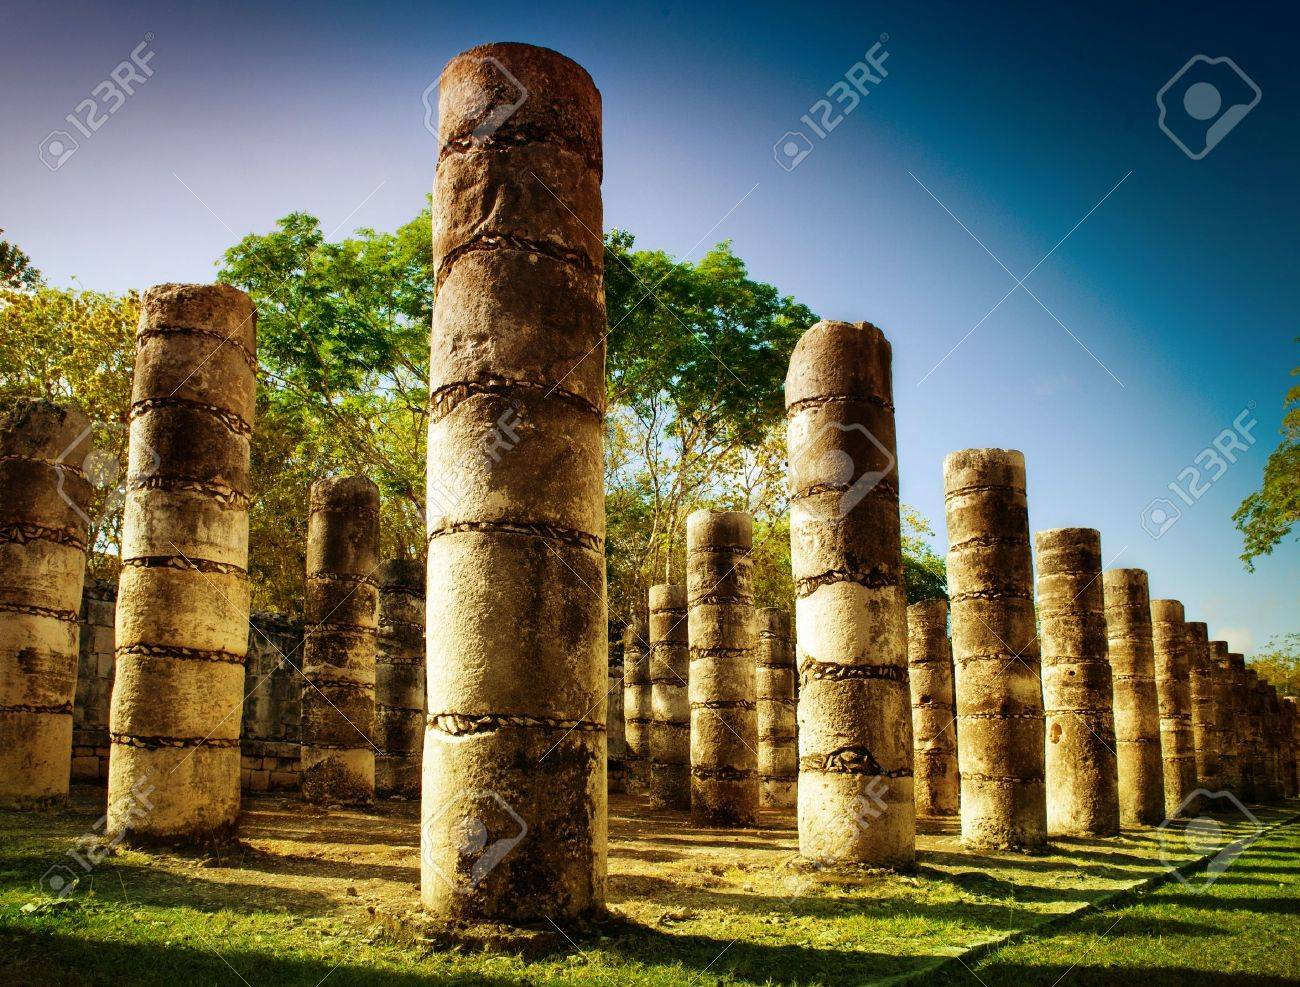 Chichen Itza, Columns in the Temple of a Thousand Warriors - 13549921